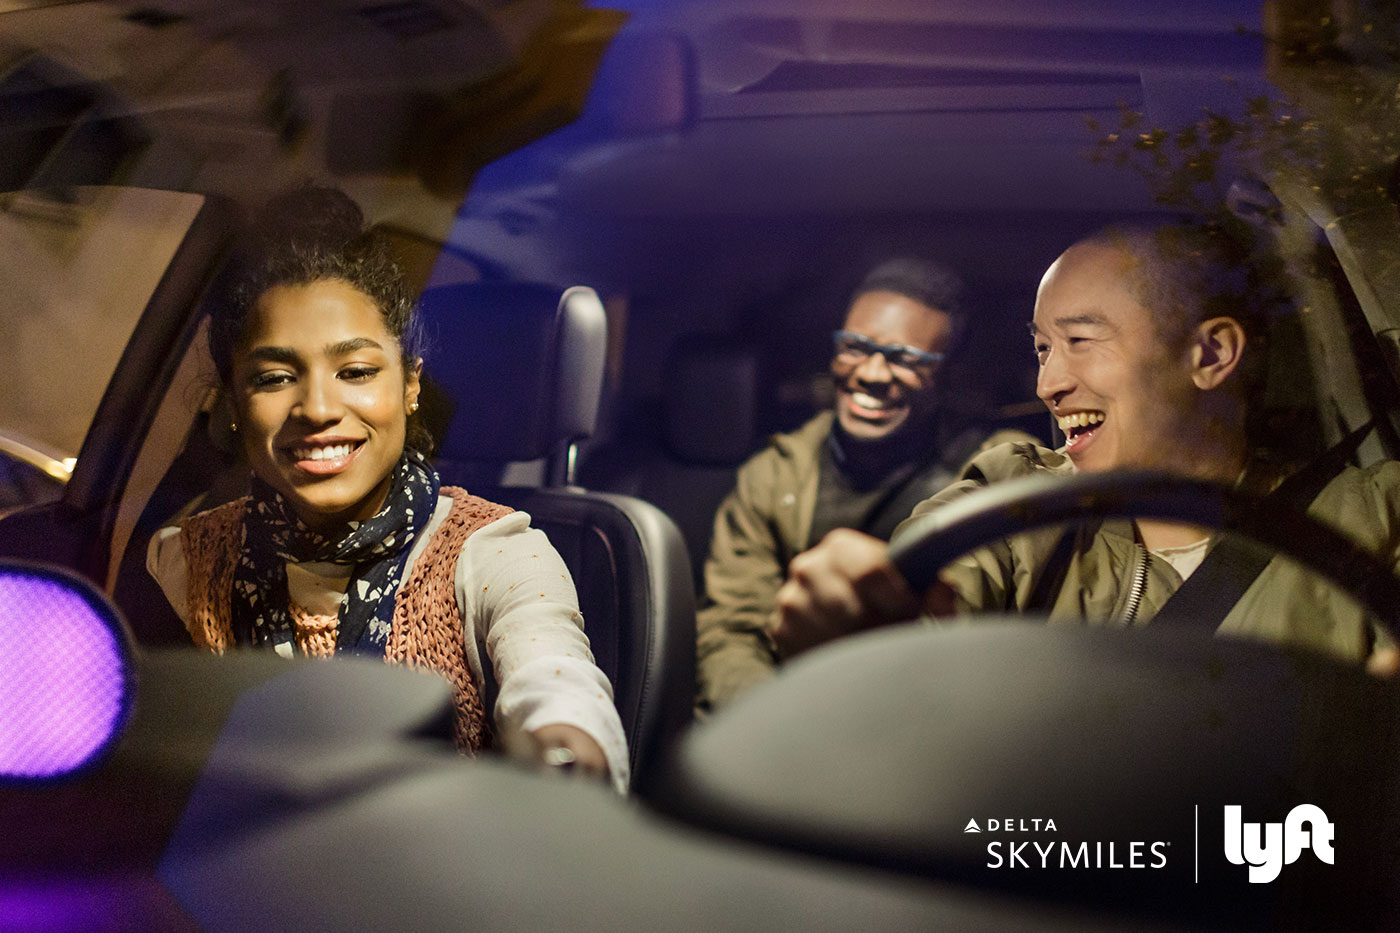 Delta expands miles program to include Lyft rides